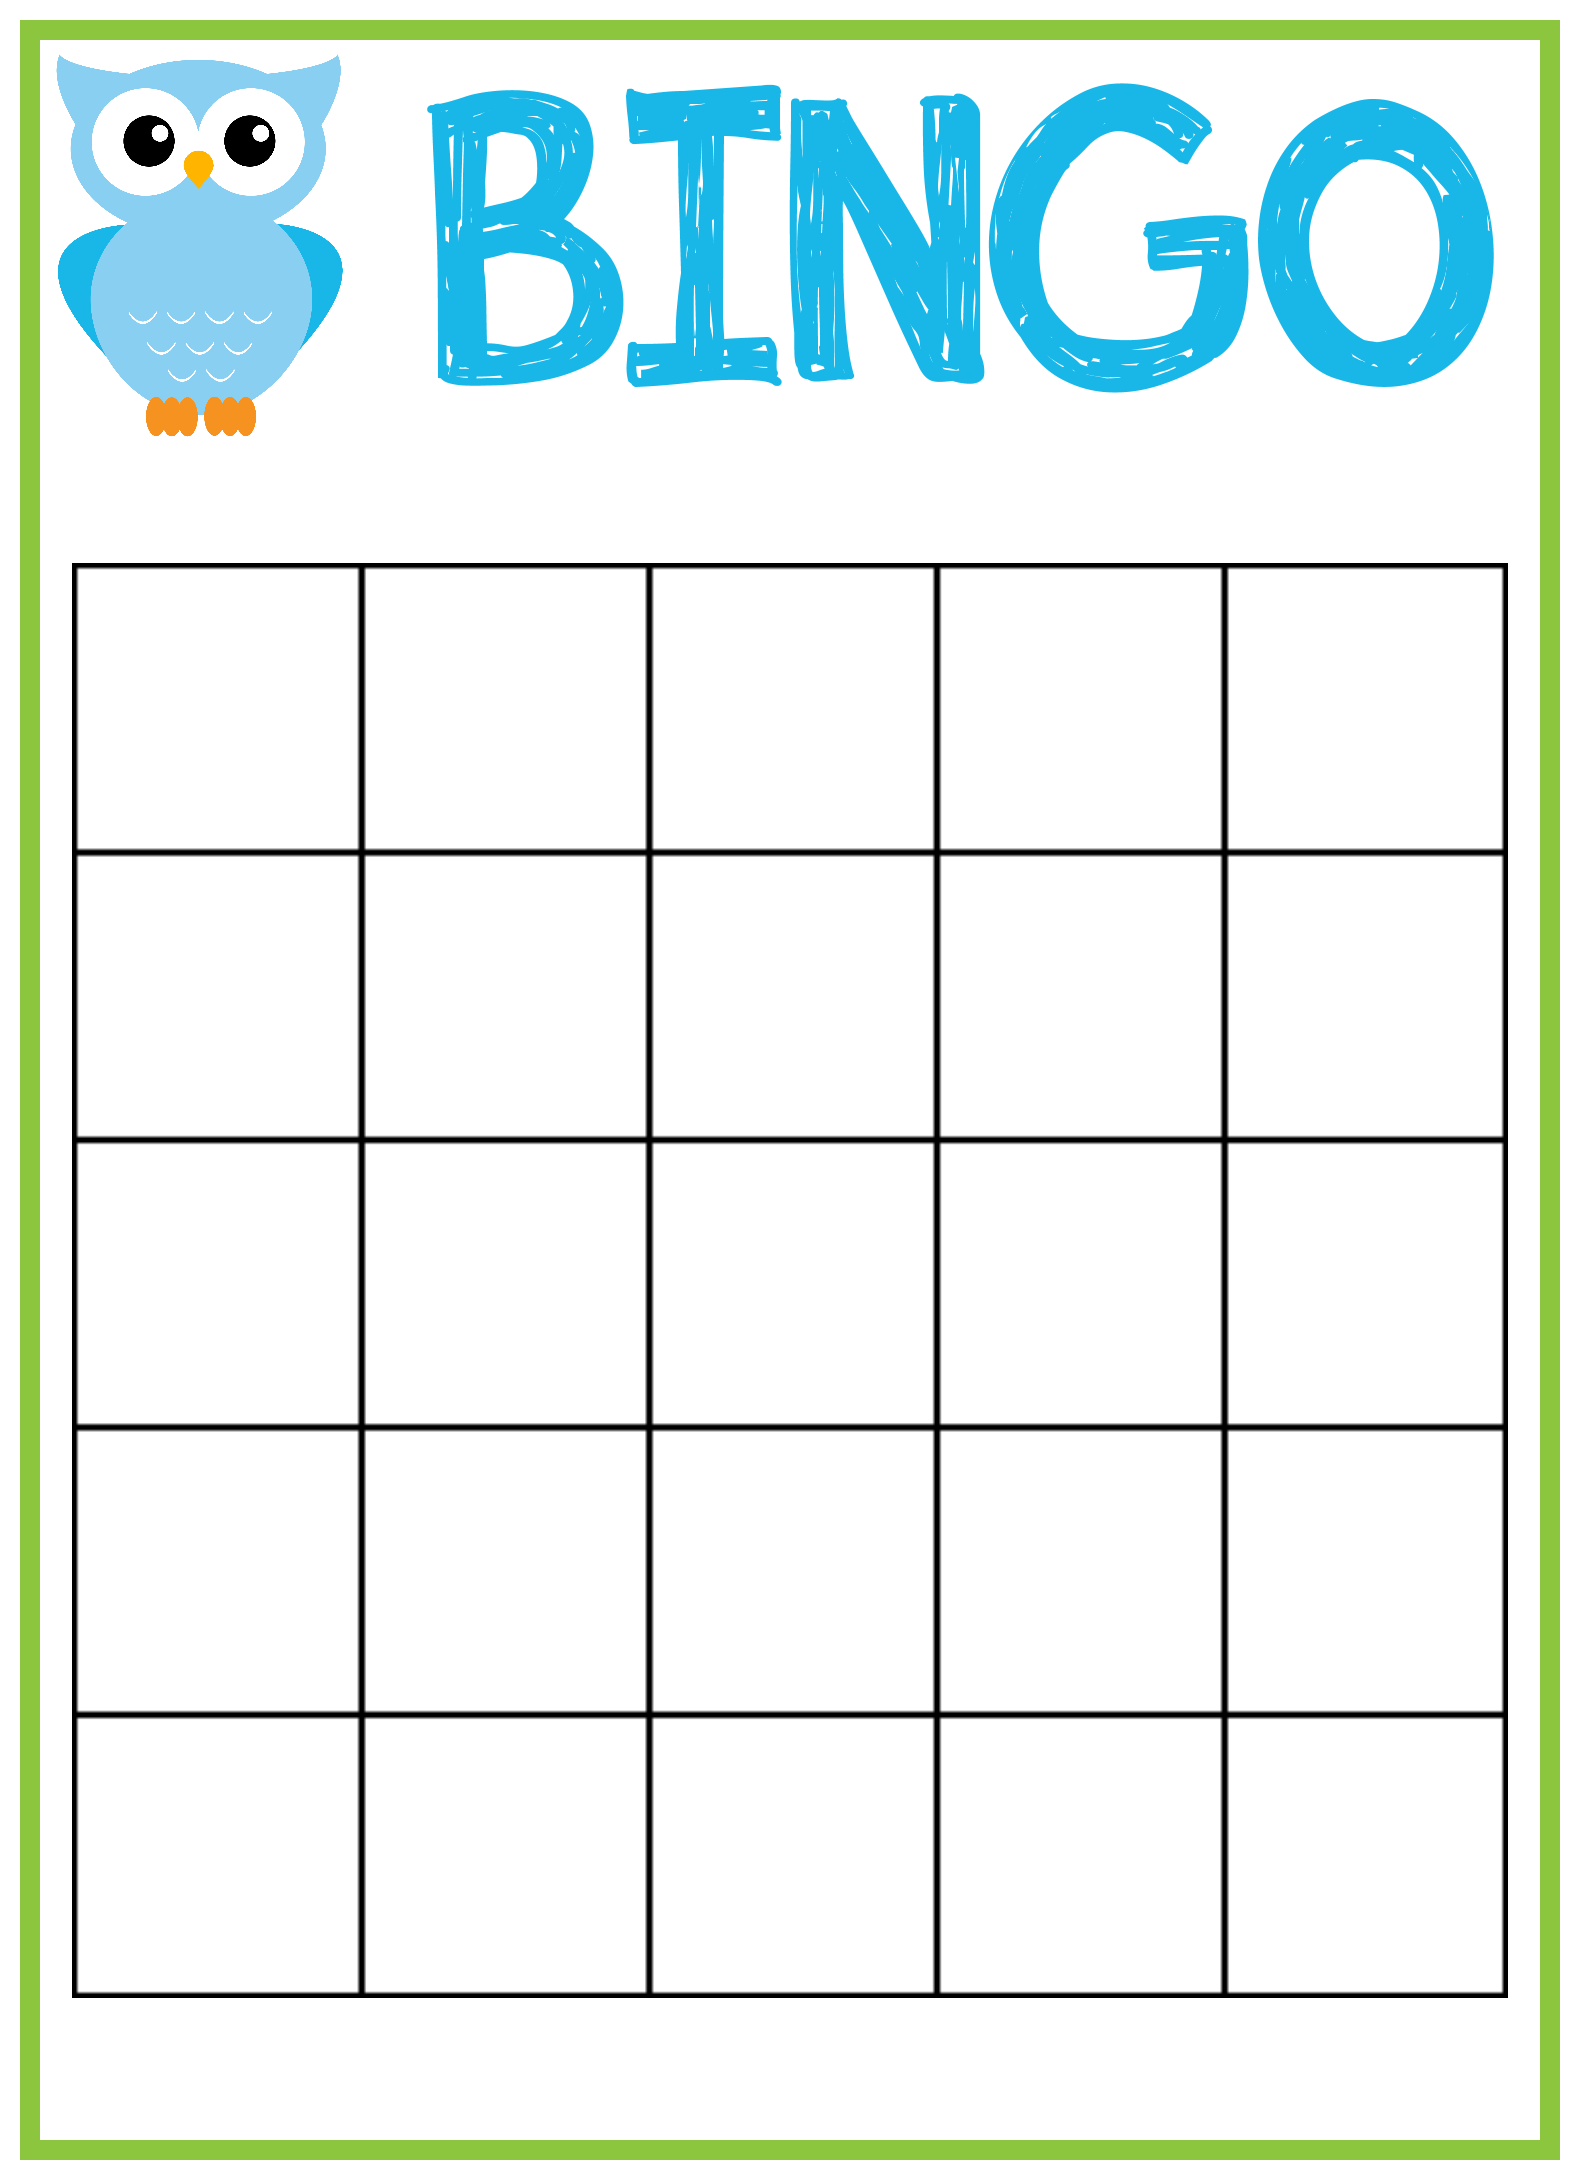 21 Visiting Bingo Card Template For Word for Ms Word by Bingo Card For Bingo Card Template Word